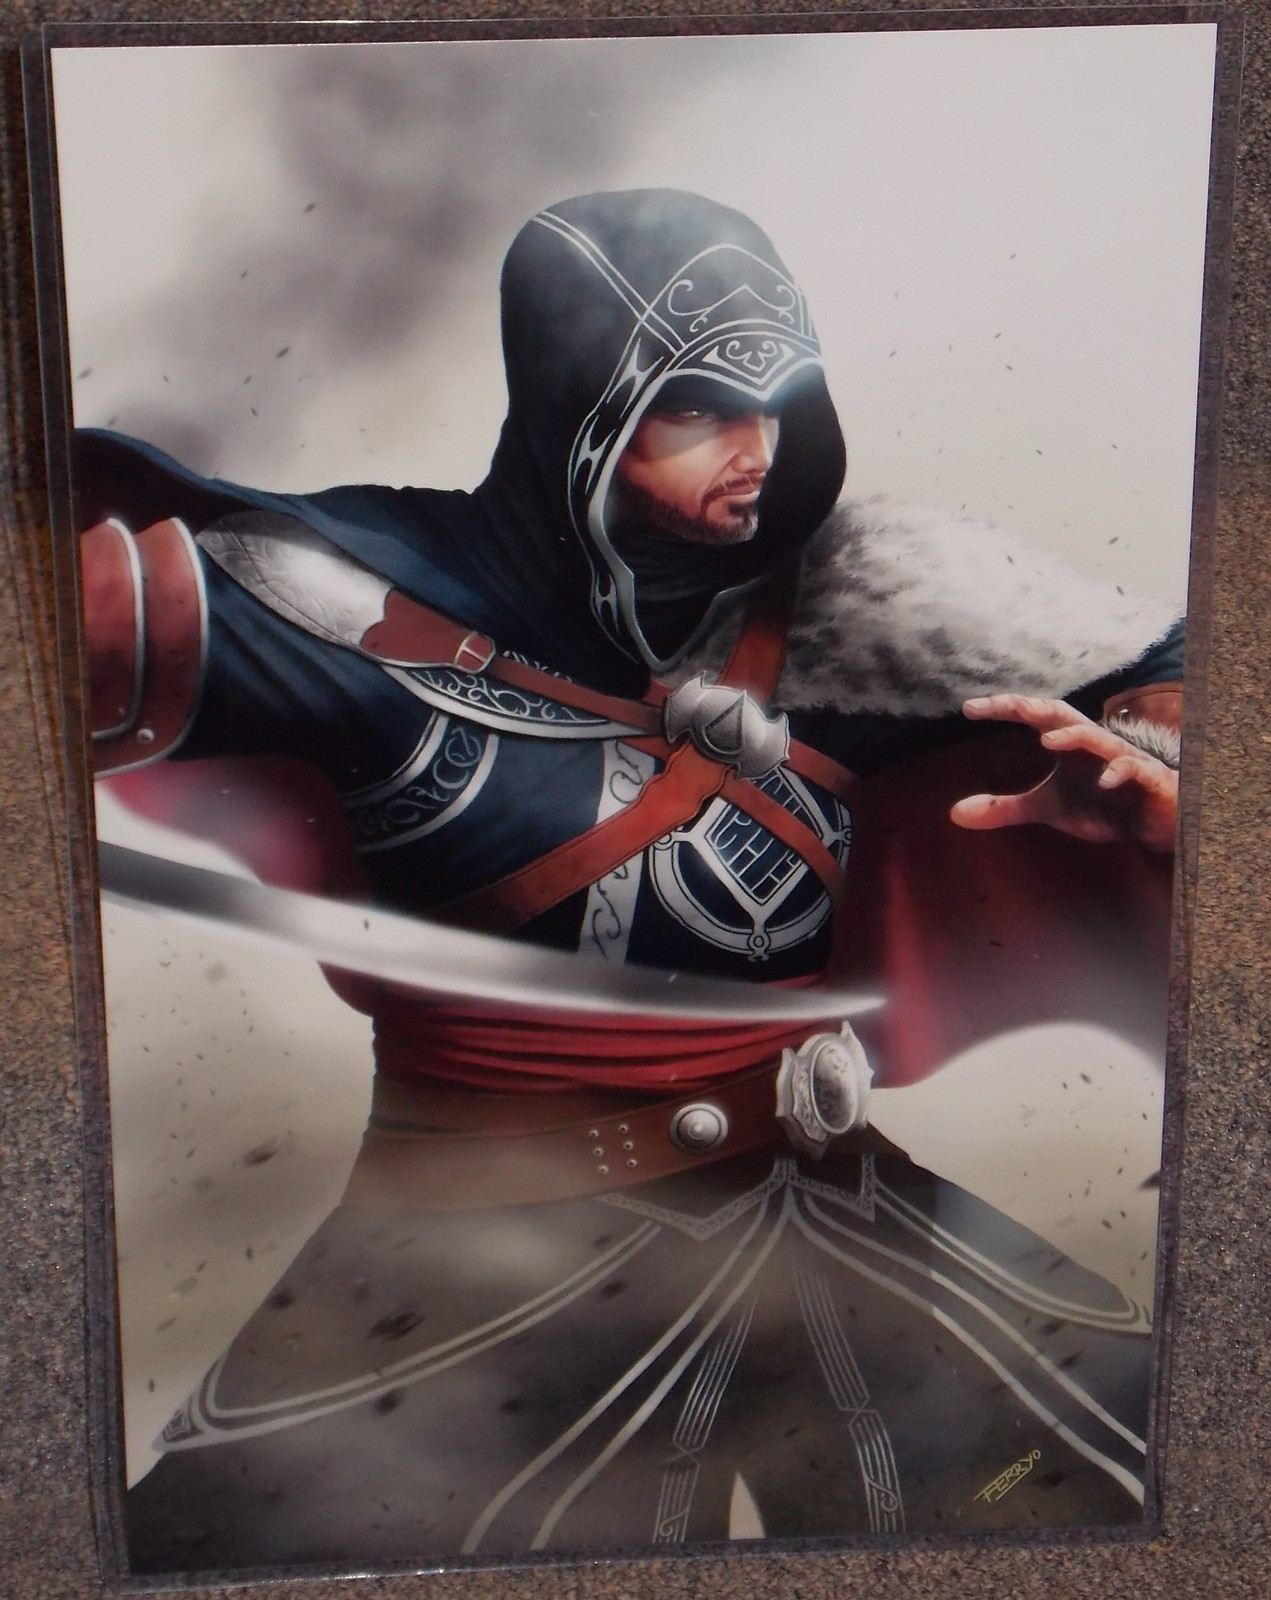 Assassins Creed Ezio Glossy Art Print 11 x 17 In Hard Plastic Sleeve